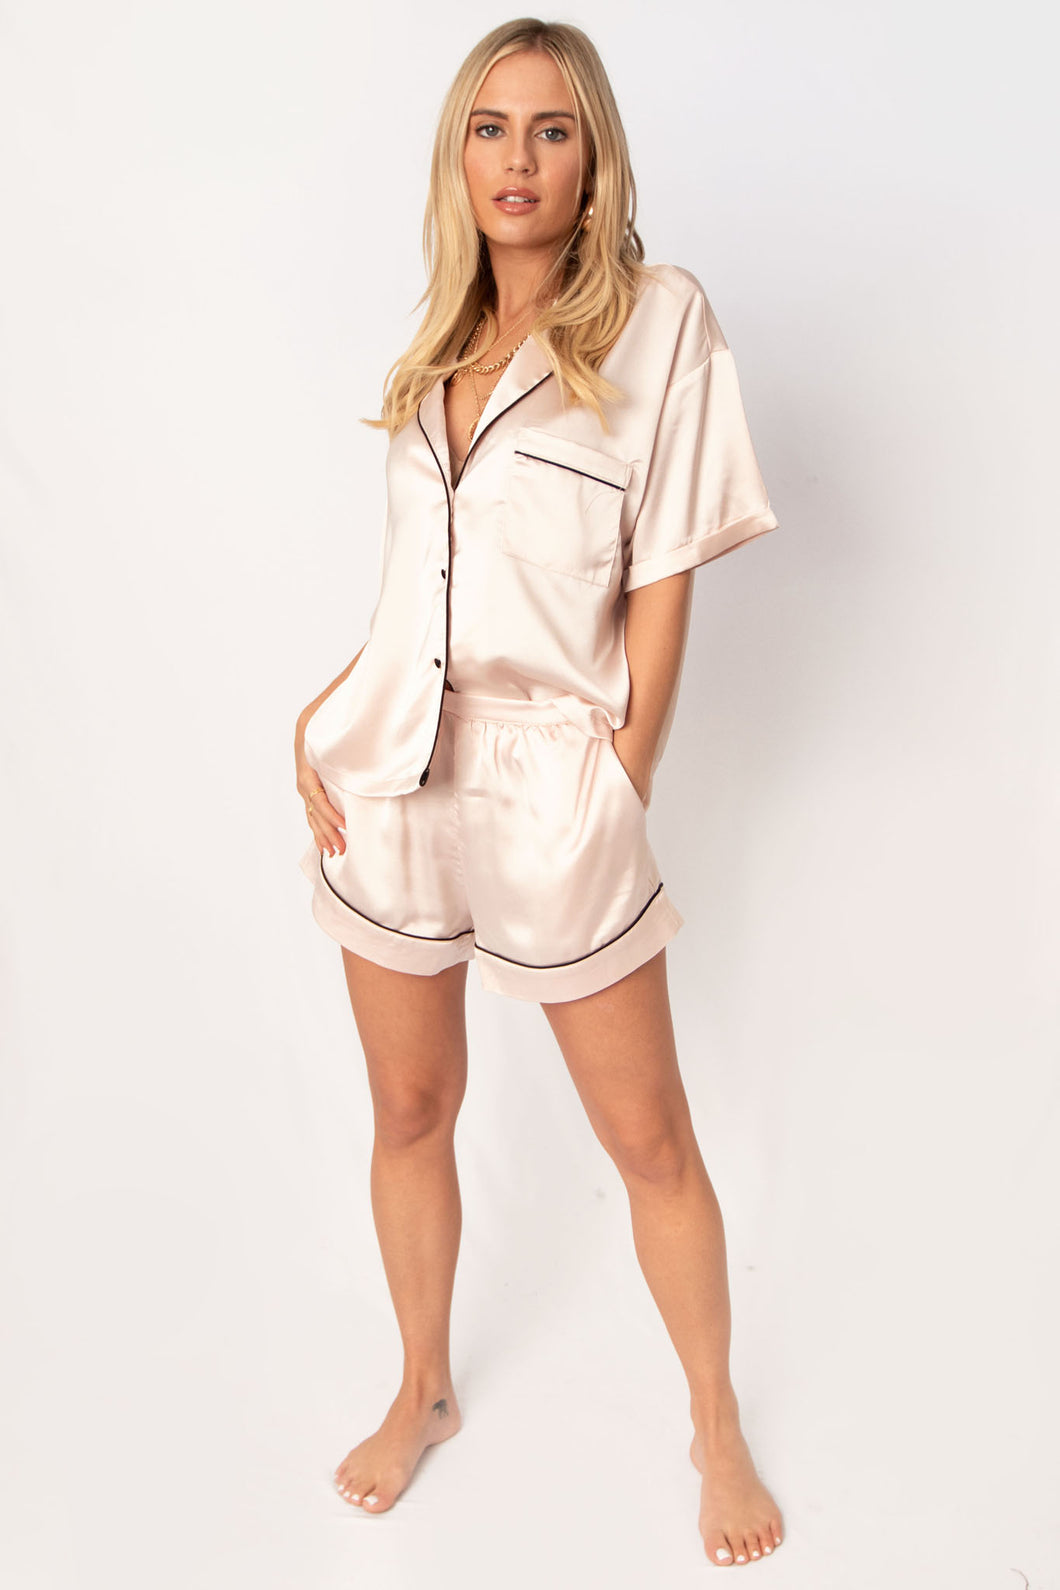 Pillow Talk Satin Collared Contrast Piping Pajama Set - Champagne